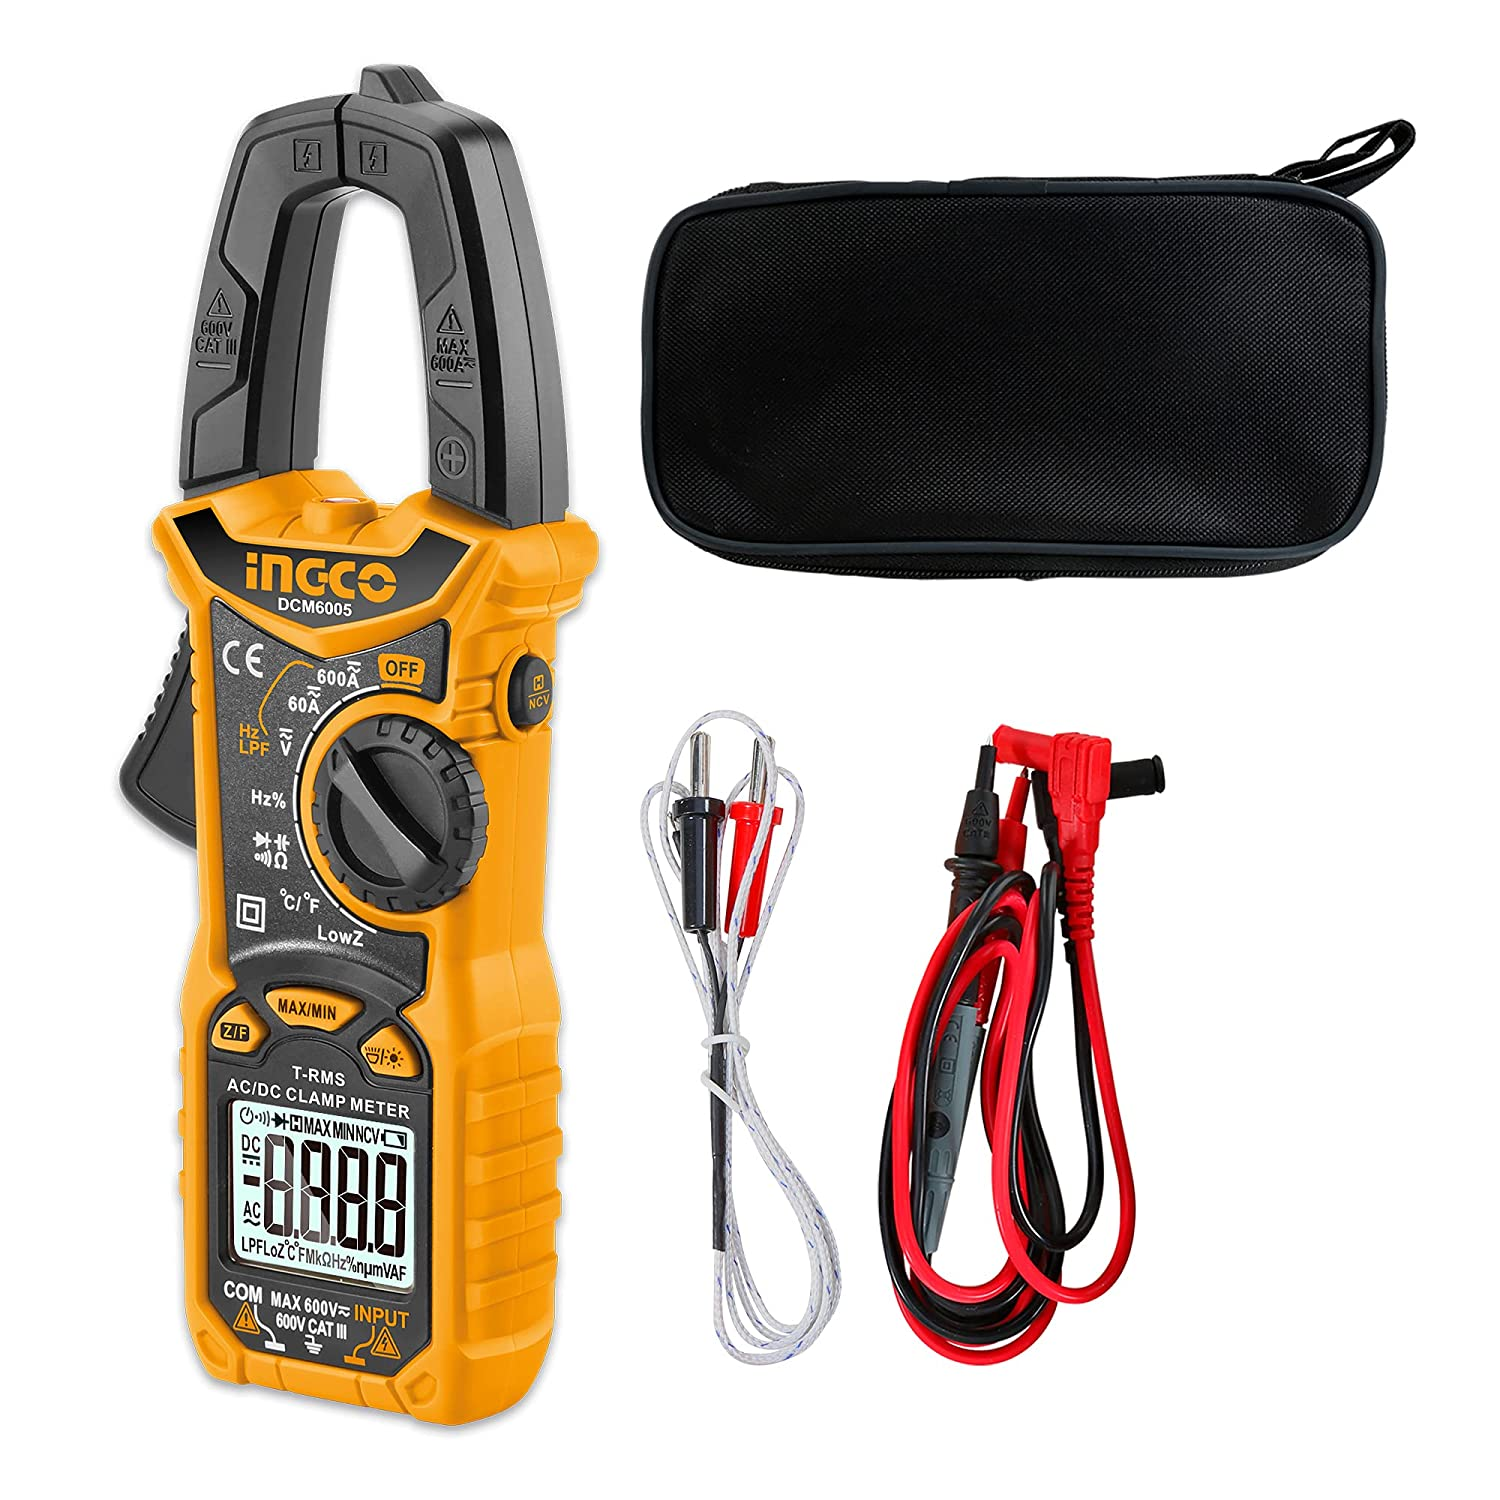 INGCO Auto Ranging Digital Clamp Meter TRMS Popular standard 6000 Max 71% OFF Counts Measures